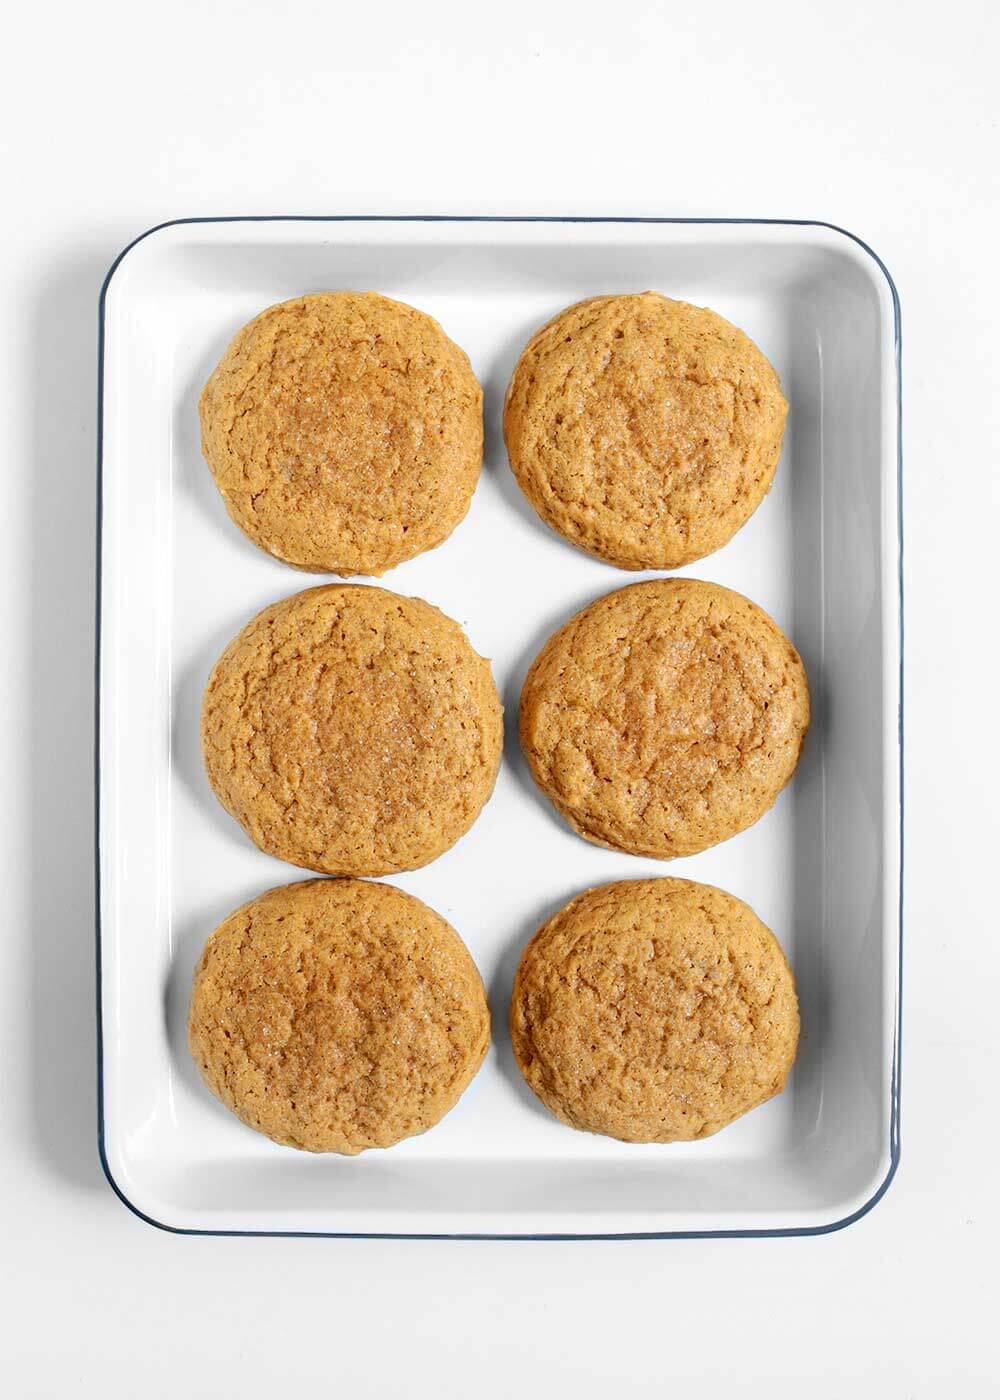 Pumpkin Cookies from the faux martha